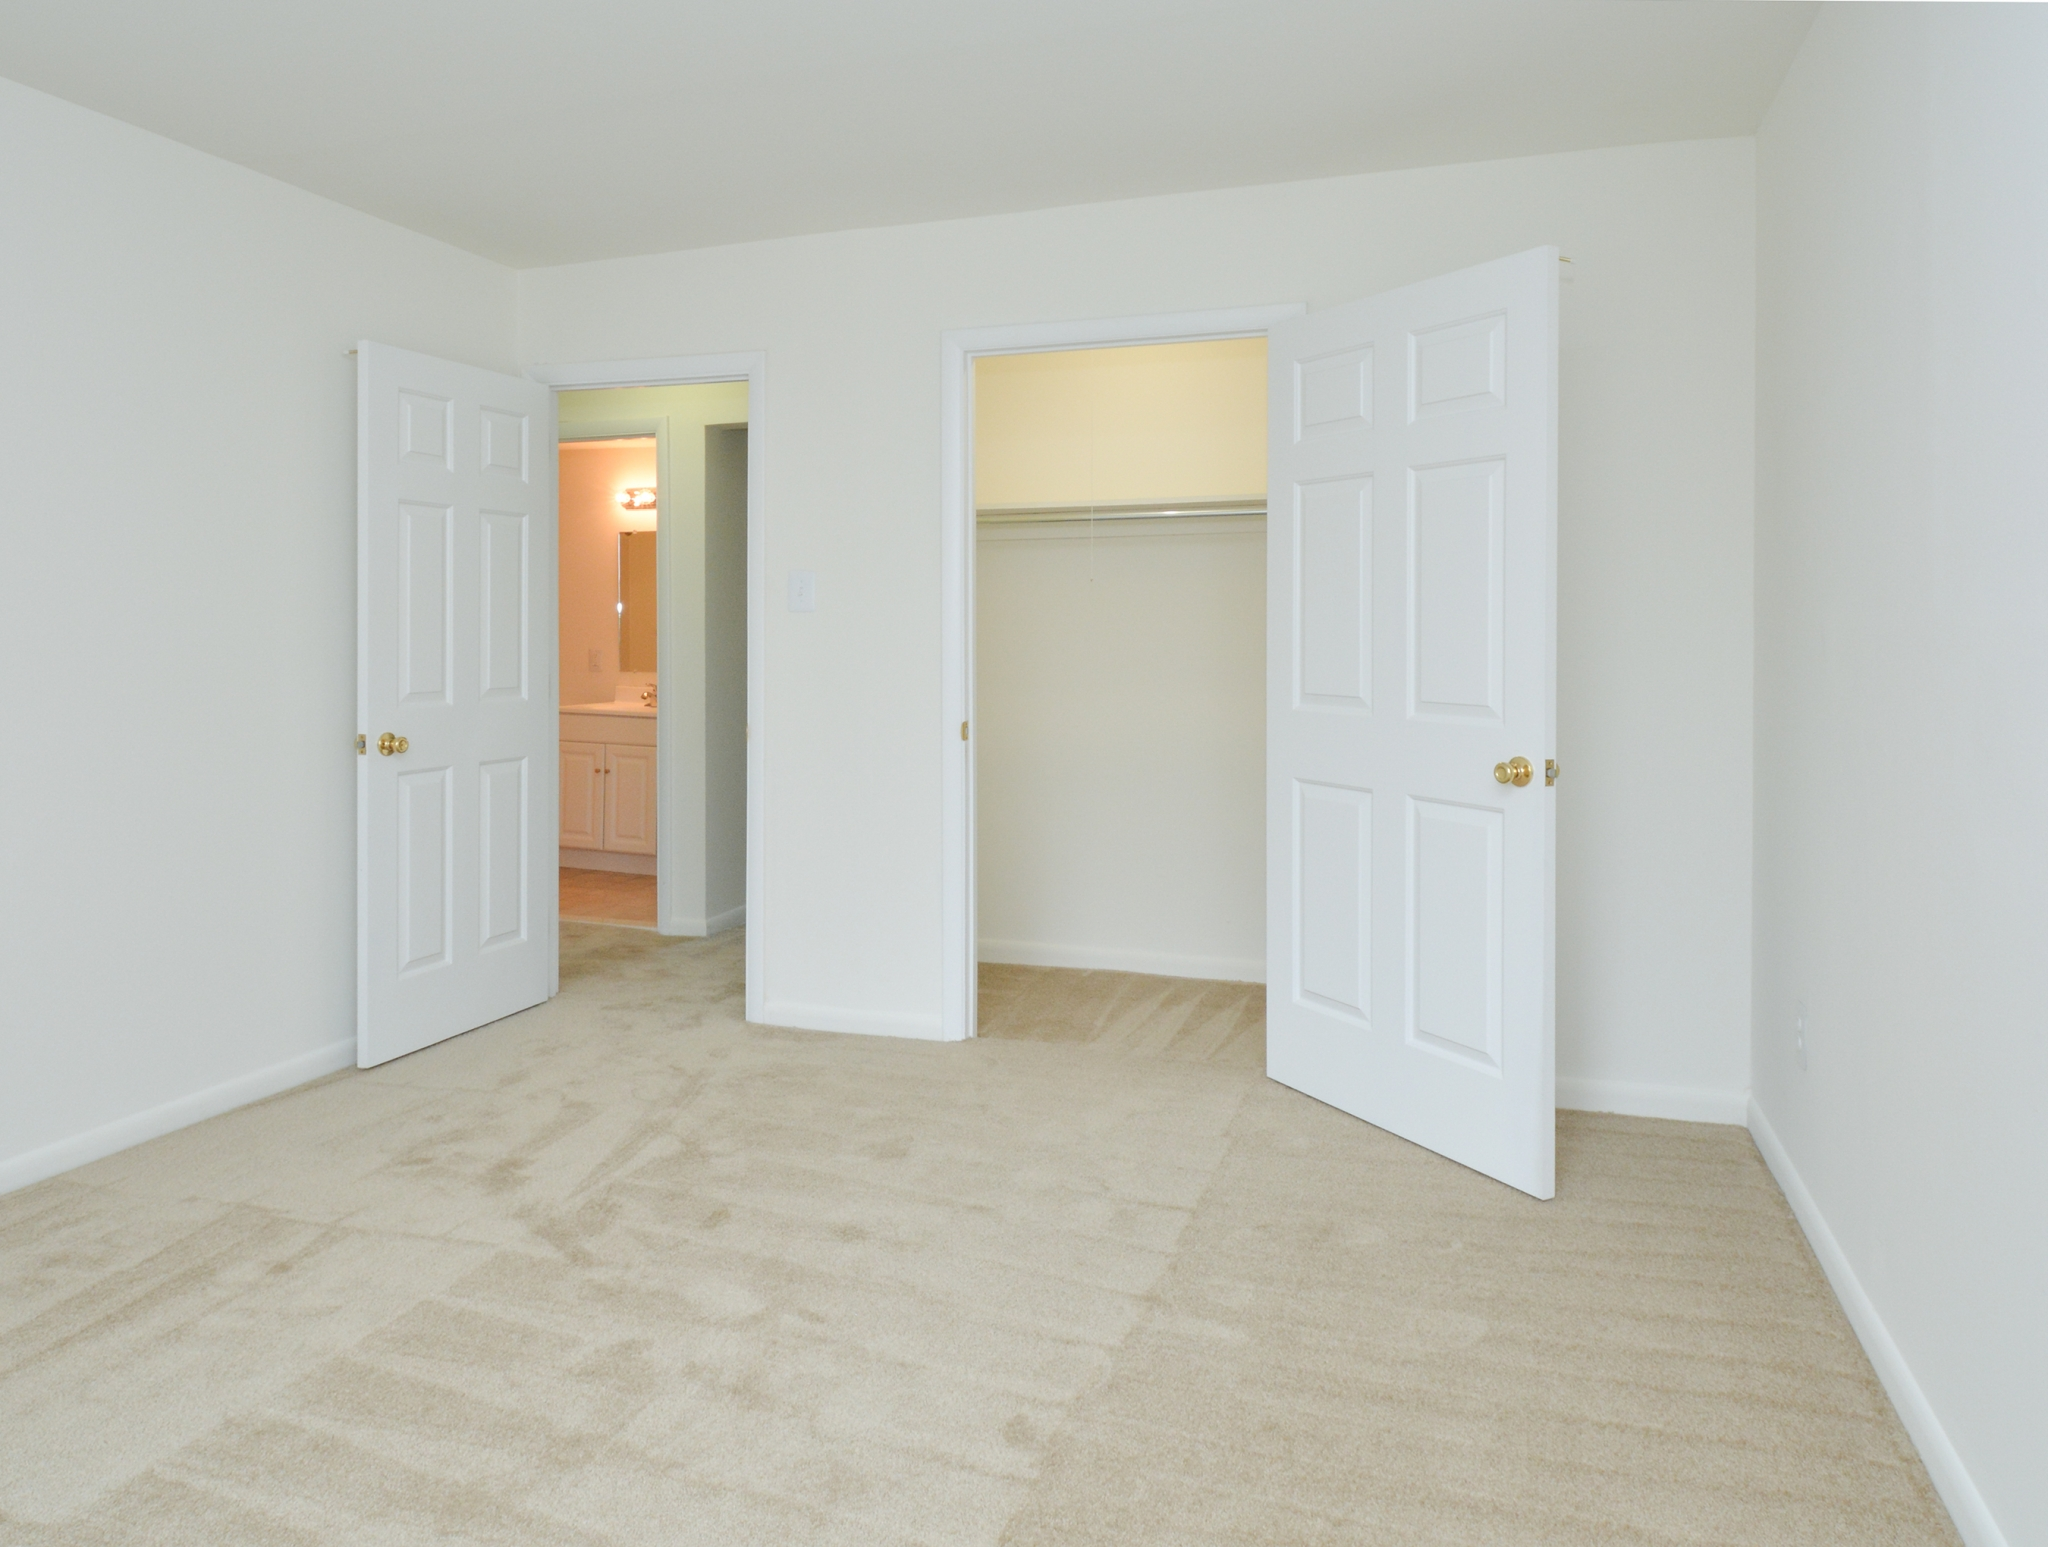 Mill Creek Village Sample Bedroom with Closet | Langhorne, PA Apartments